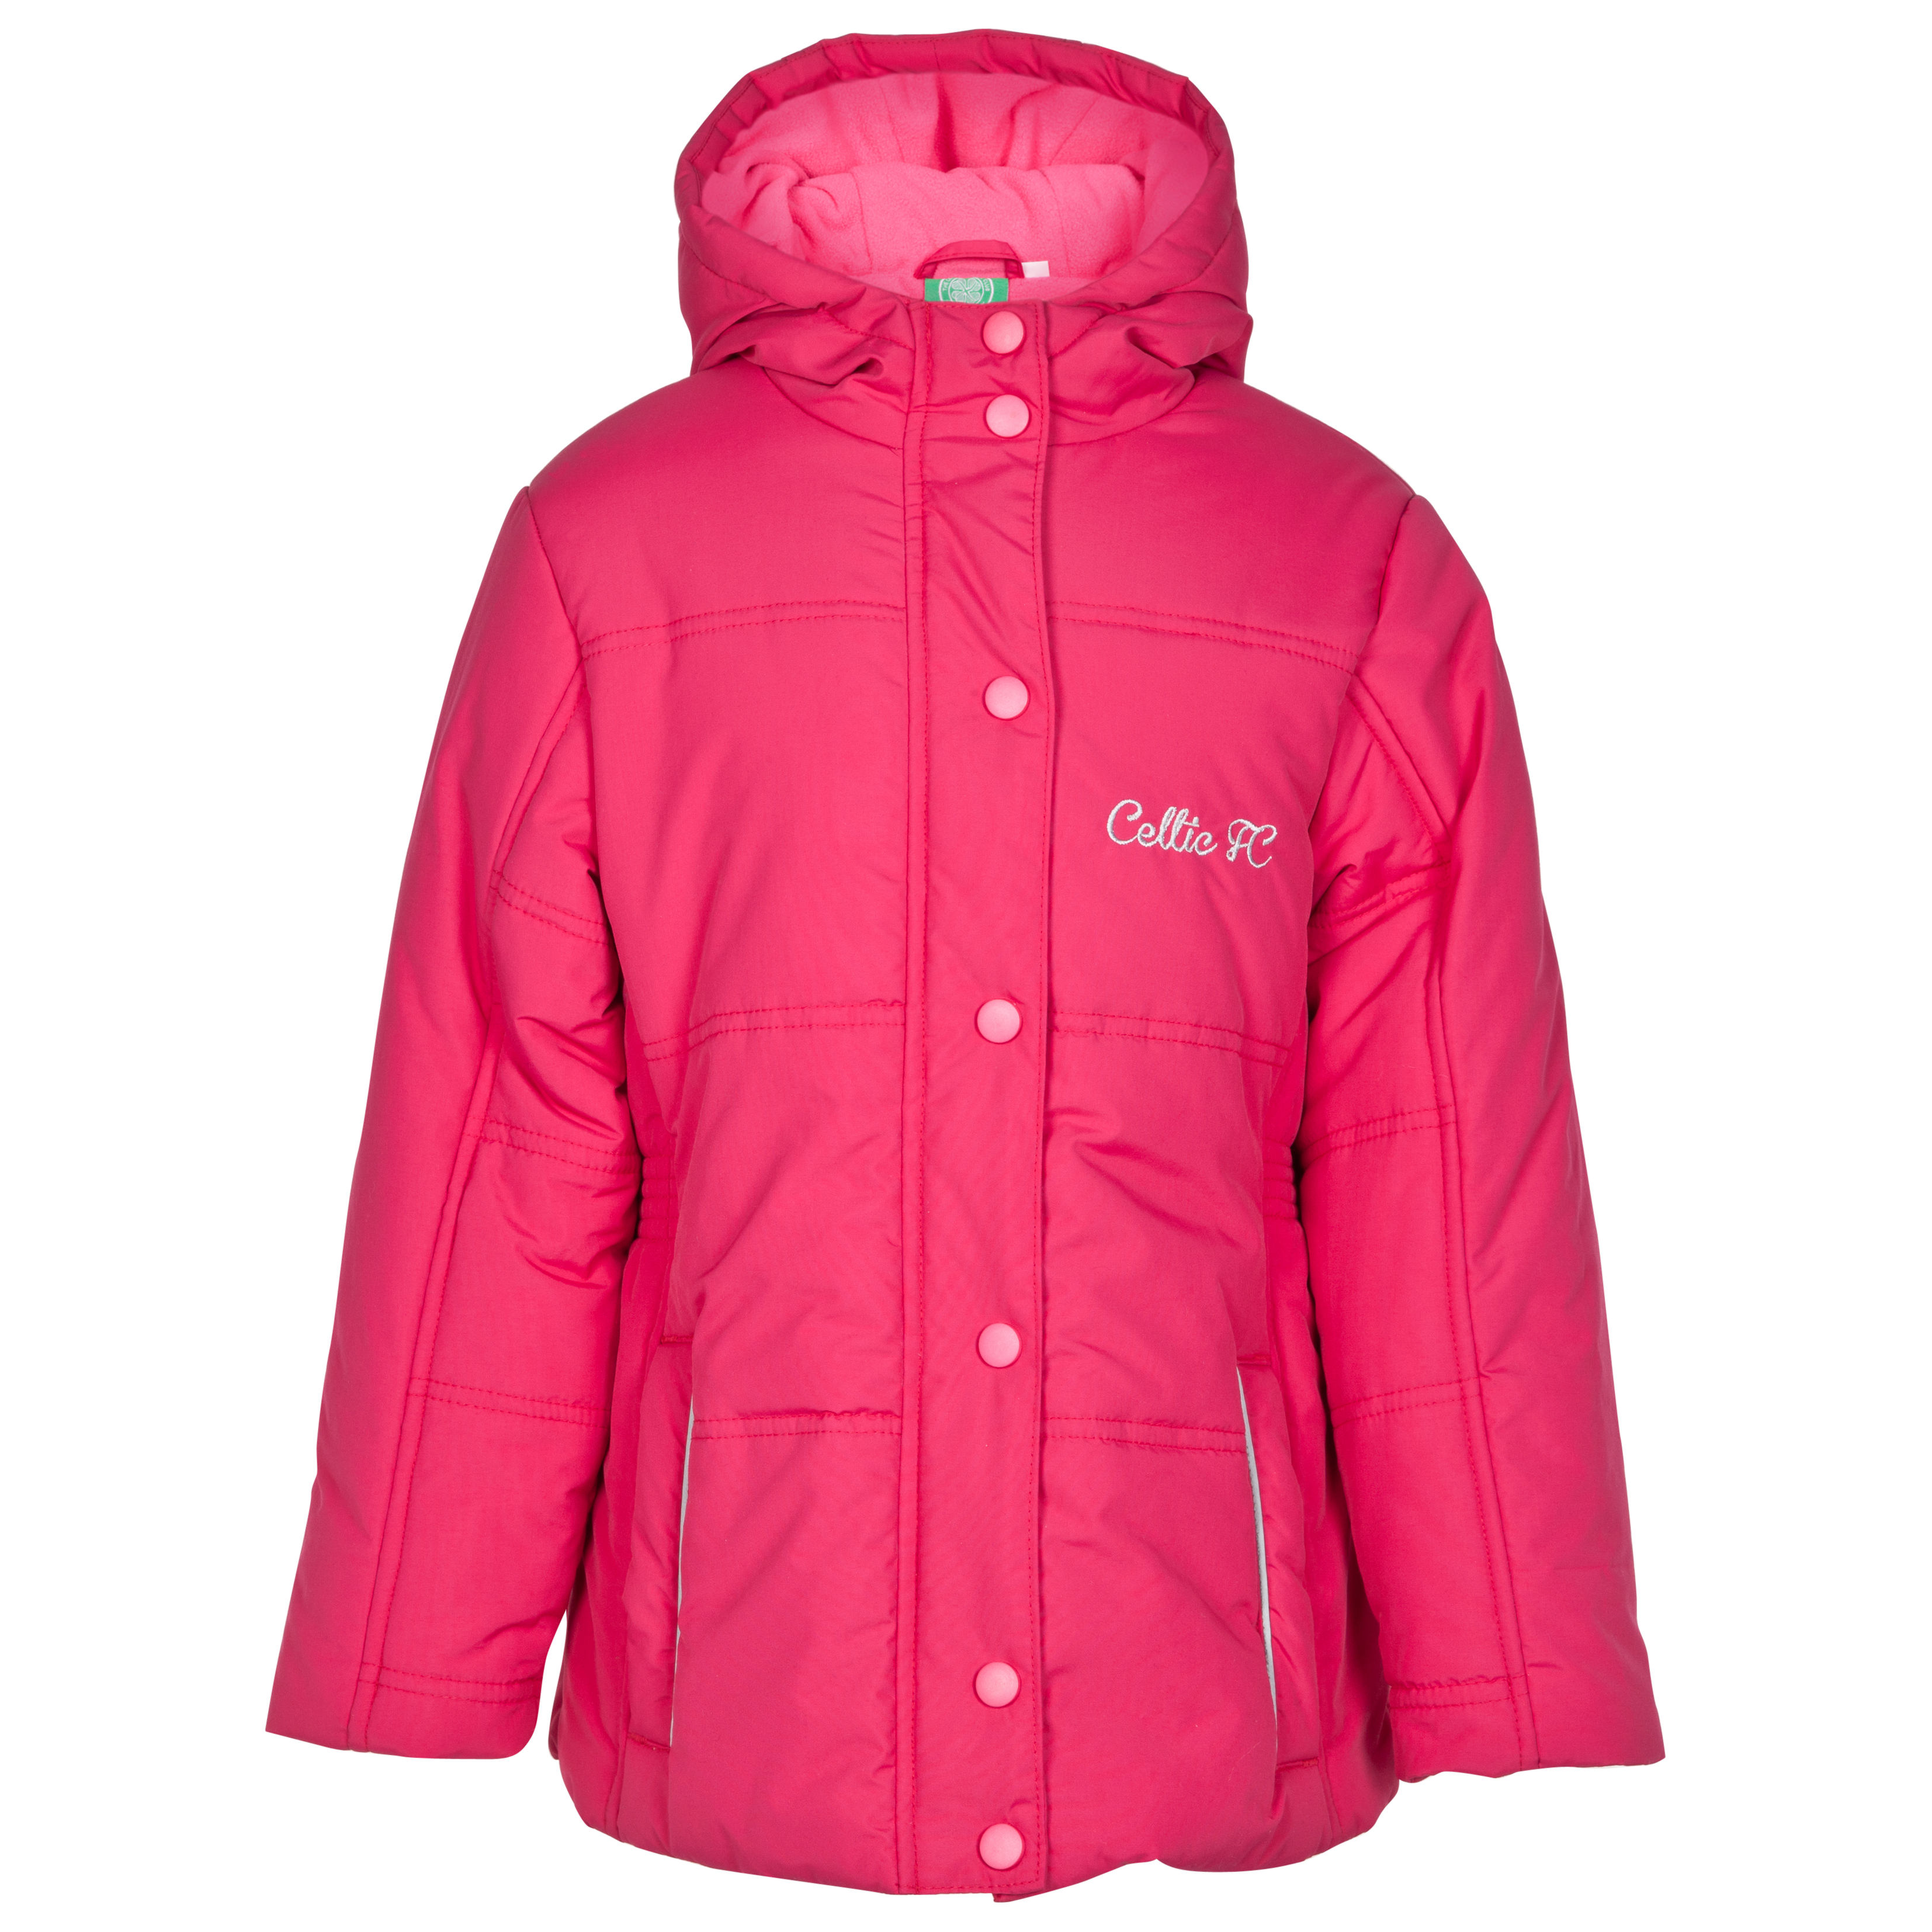 Celtic Padded Jacket - Pink - Girls